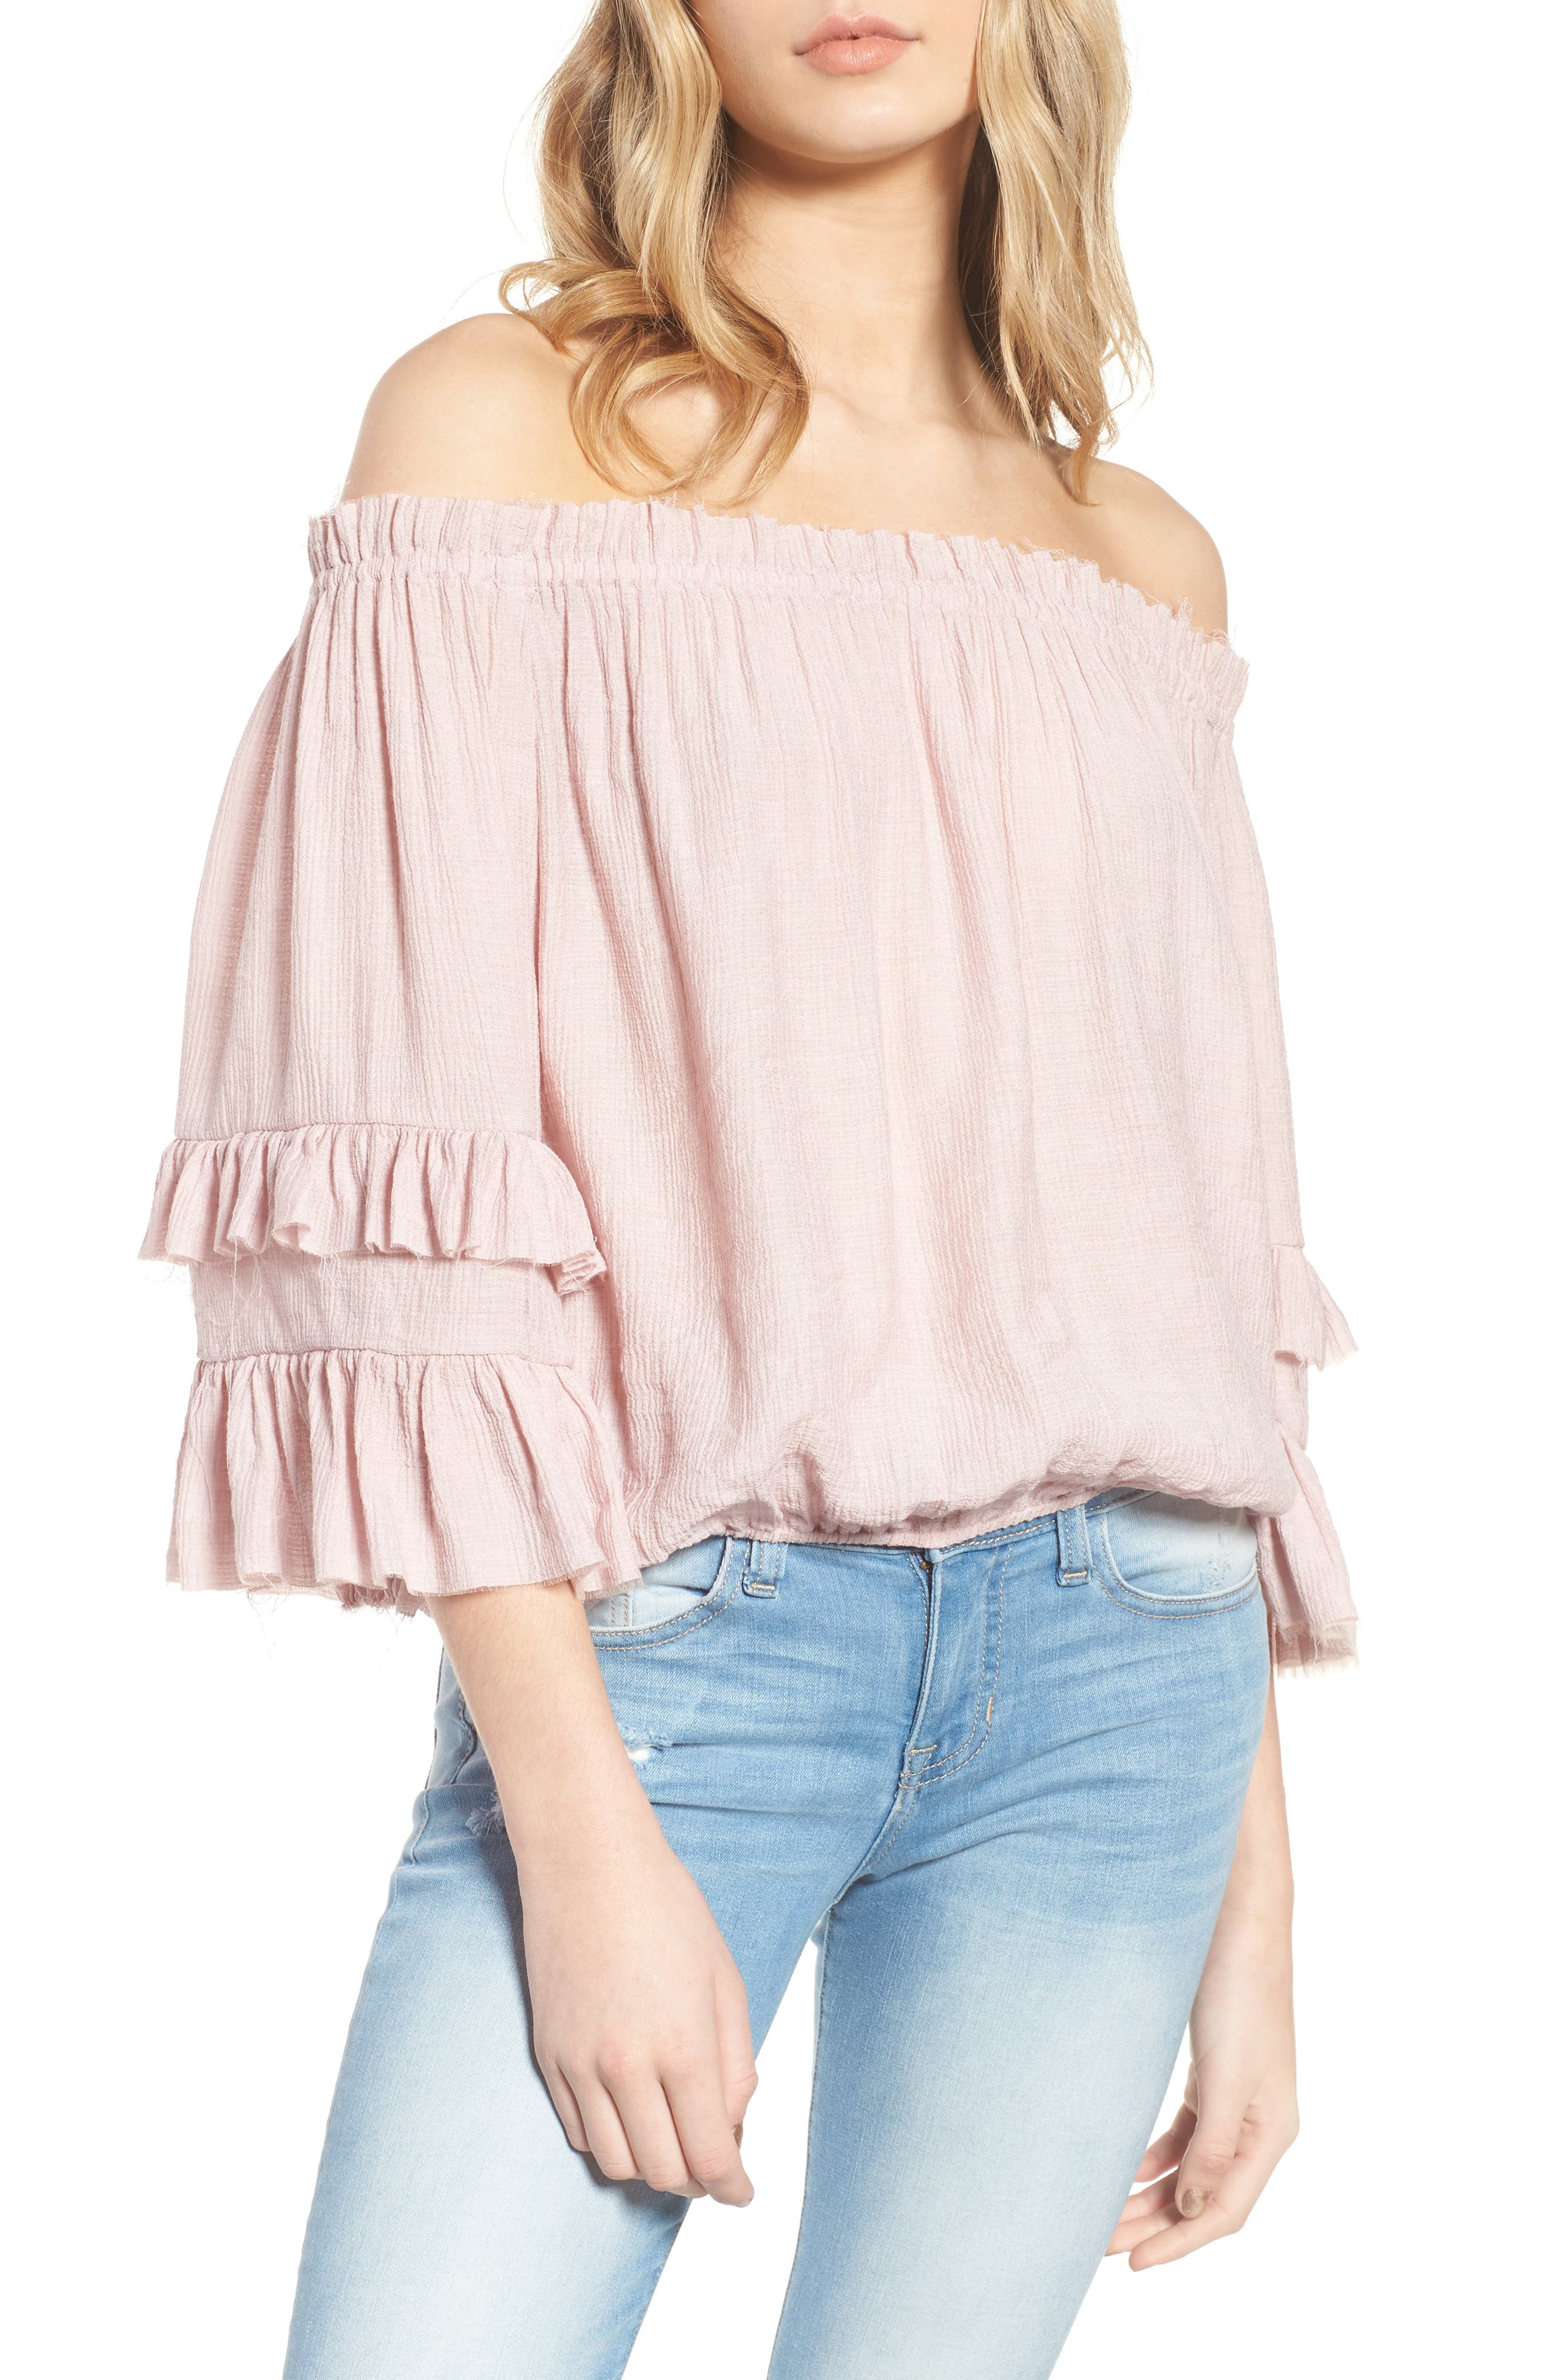 Know One Cares Tiered Off the Shoulder Top,                         Main,                         color,